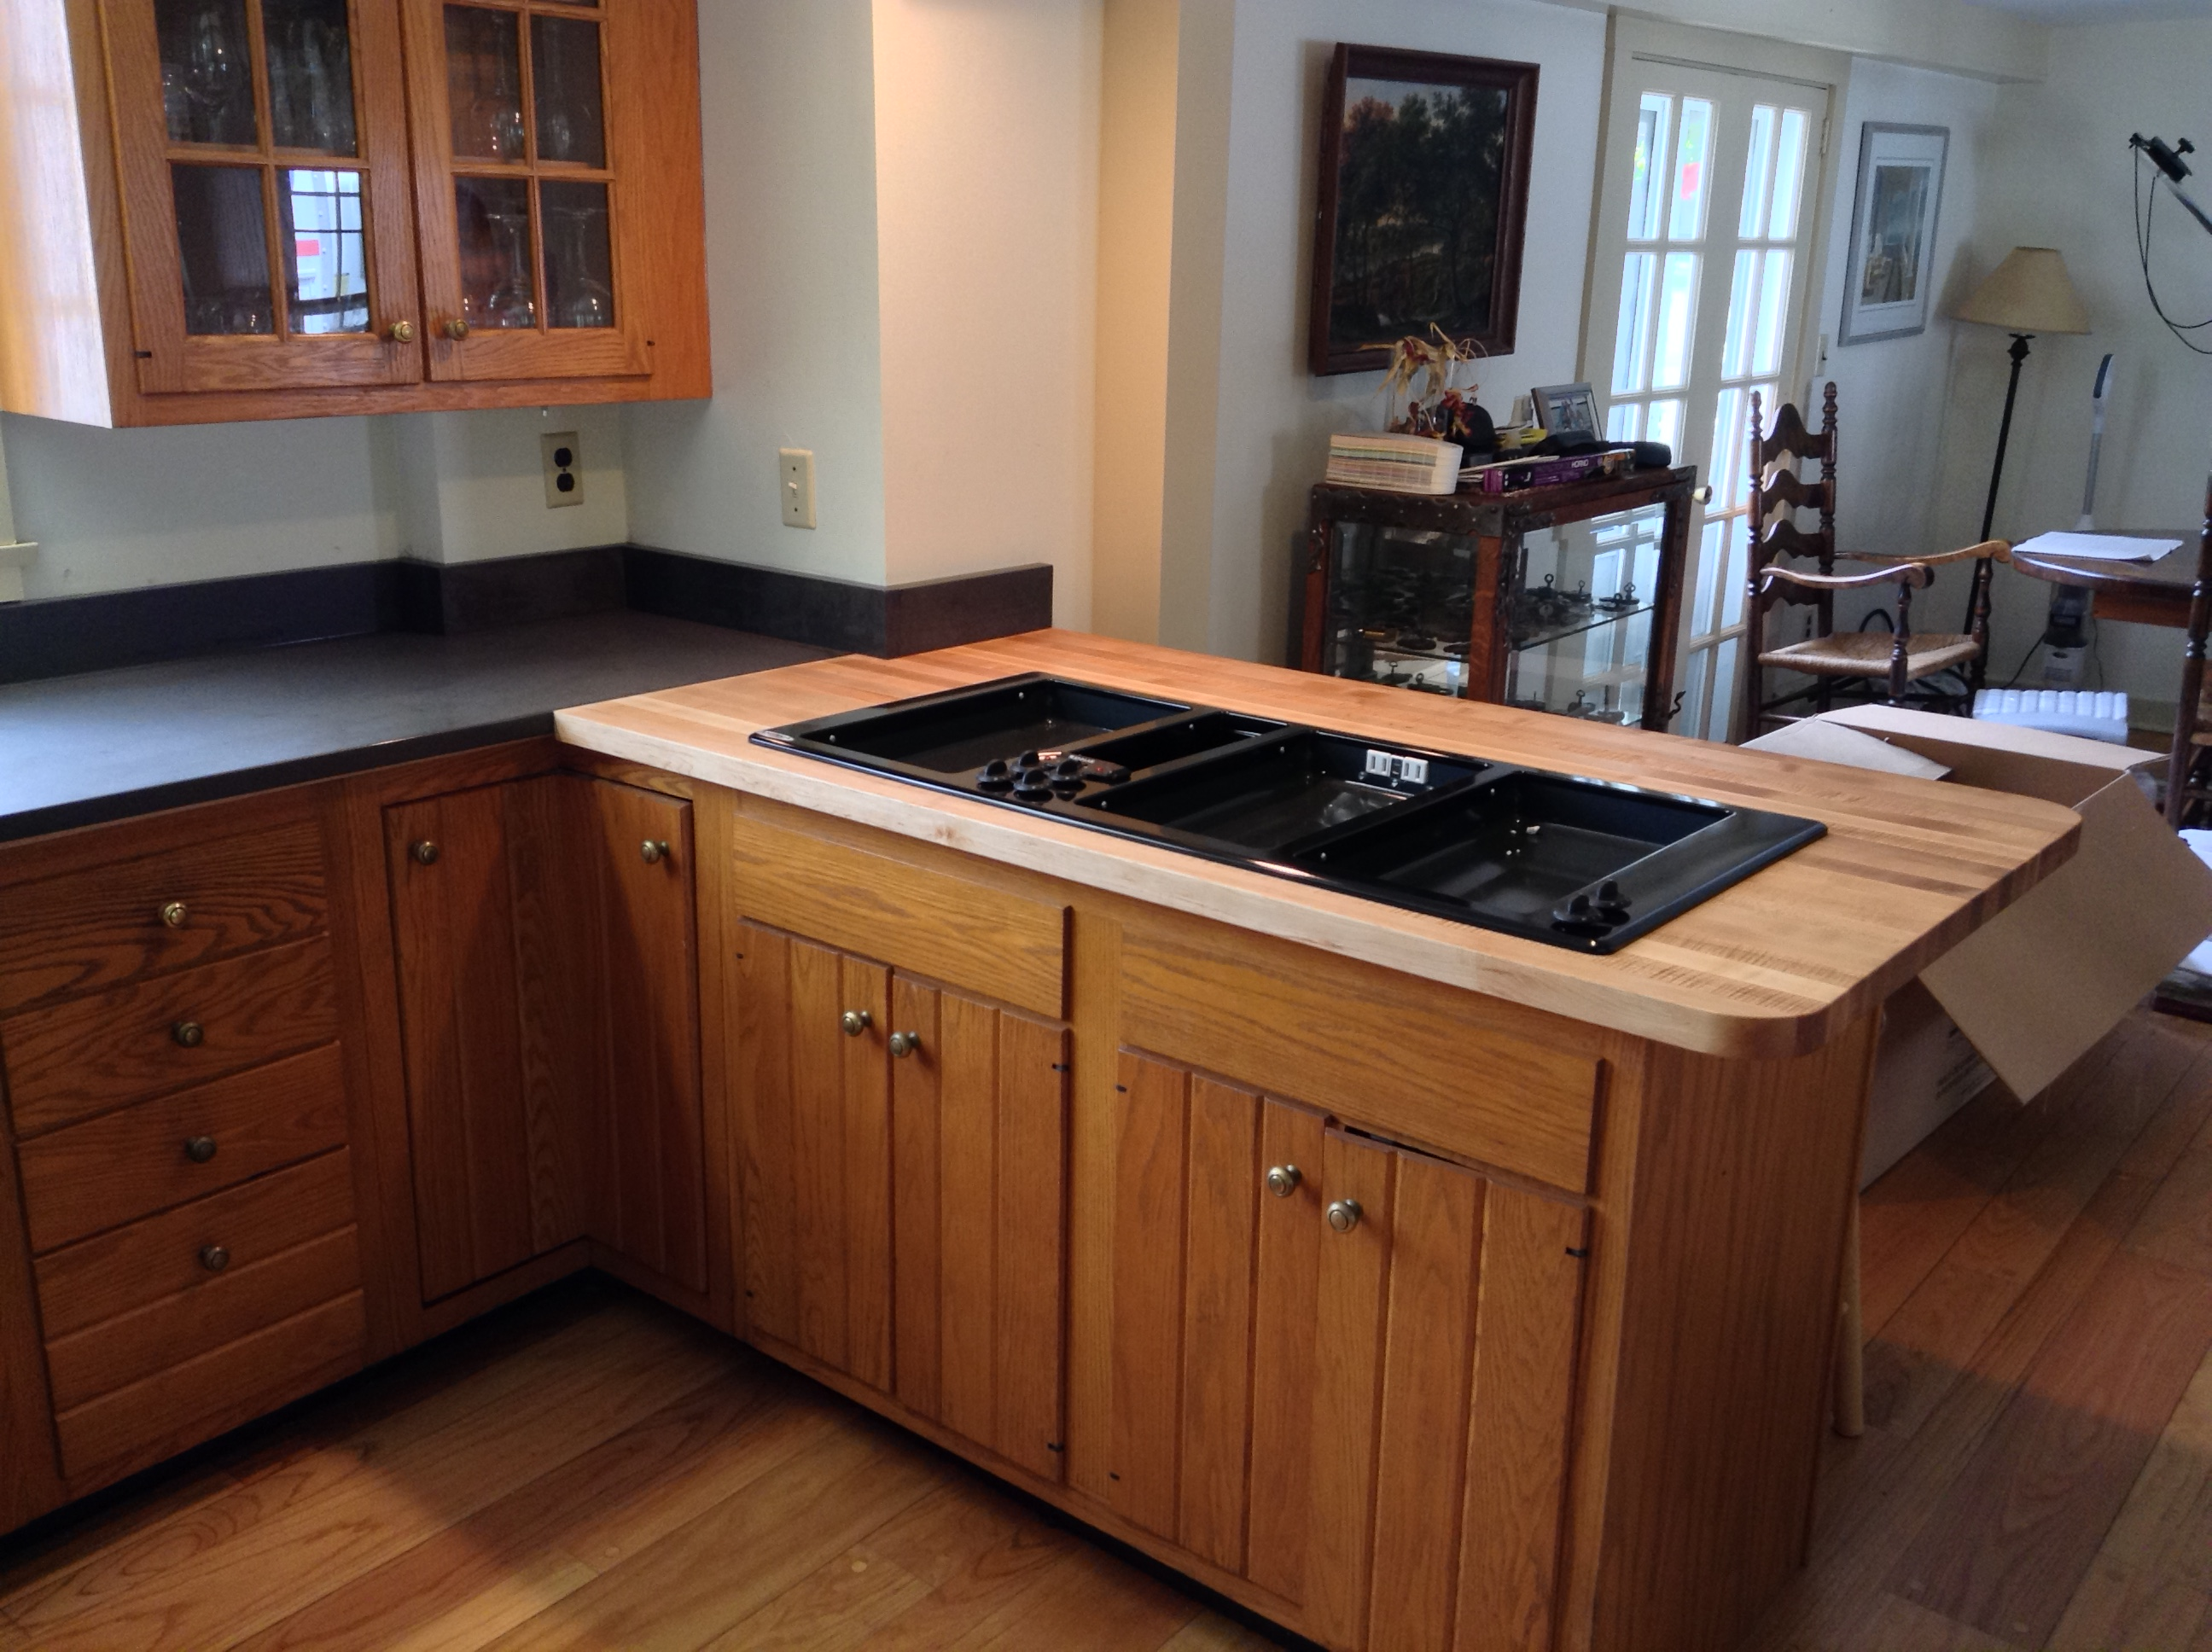 countertops rustic super countertop pinterest reclaimed good kitchen looking classy design wood furniture trends in look cabinets hall picture target cabinet ideas gallery pictures photo with lowest awesome